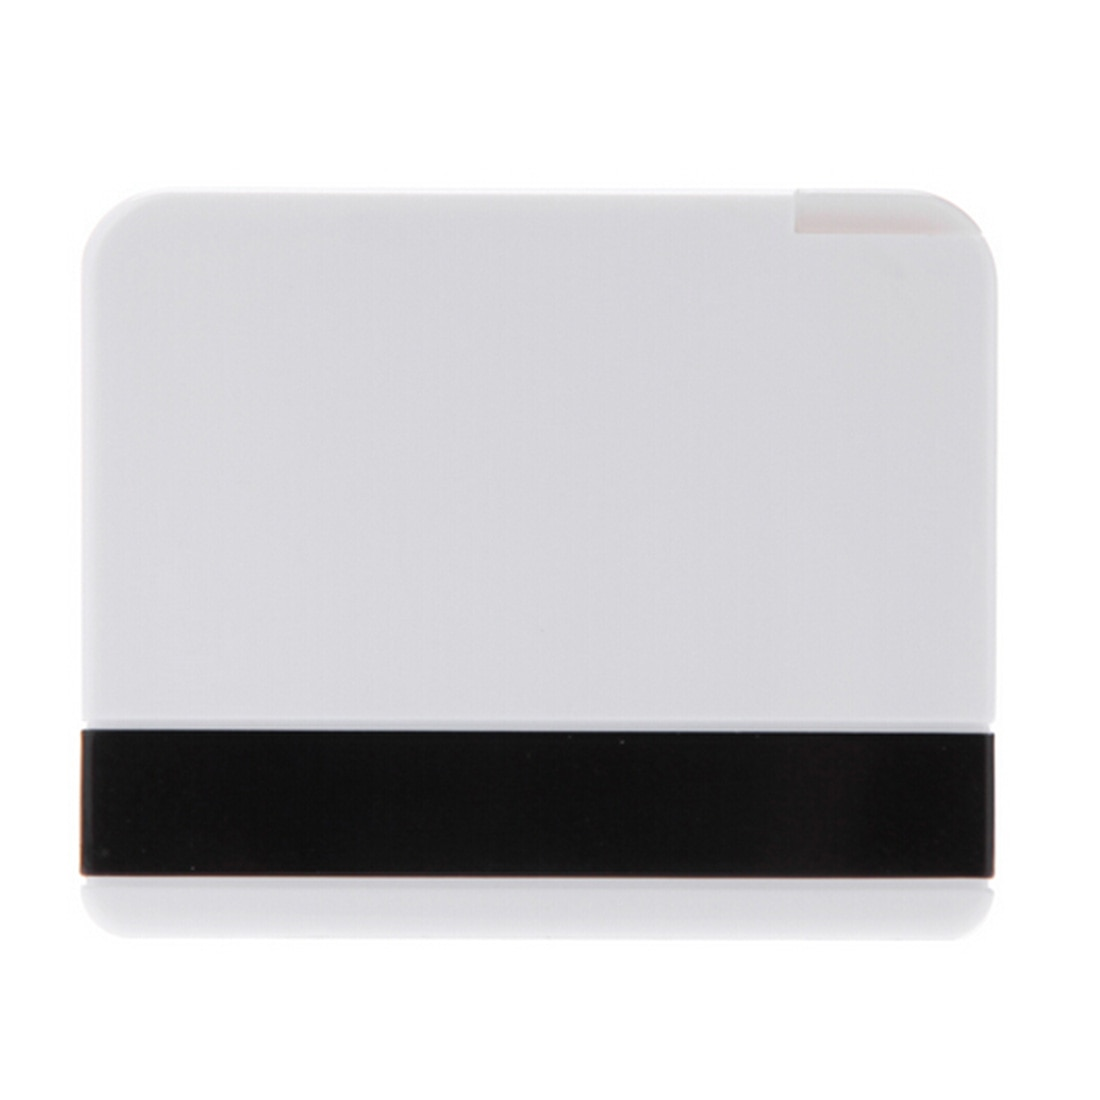 Bluetooth A2DP 30Pin Music Receiver Audio Adapter Dock for iPad iPod